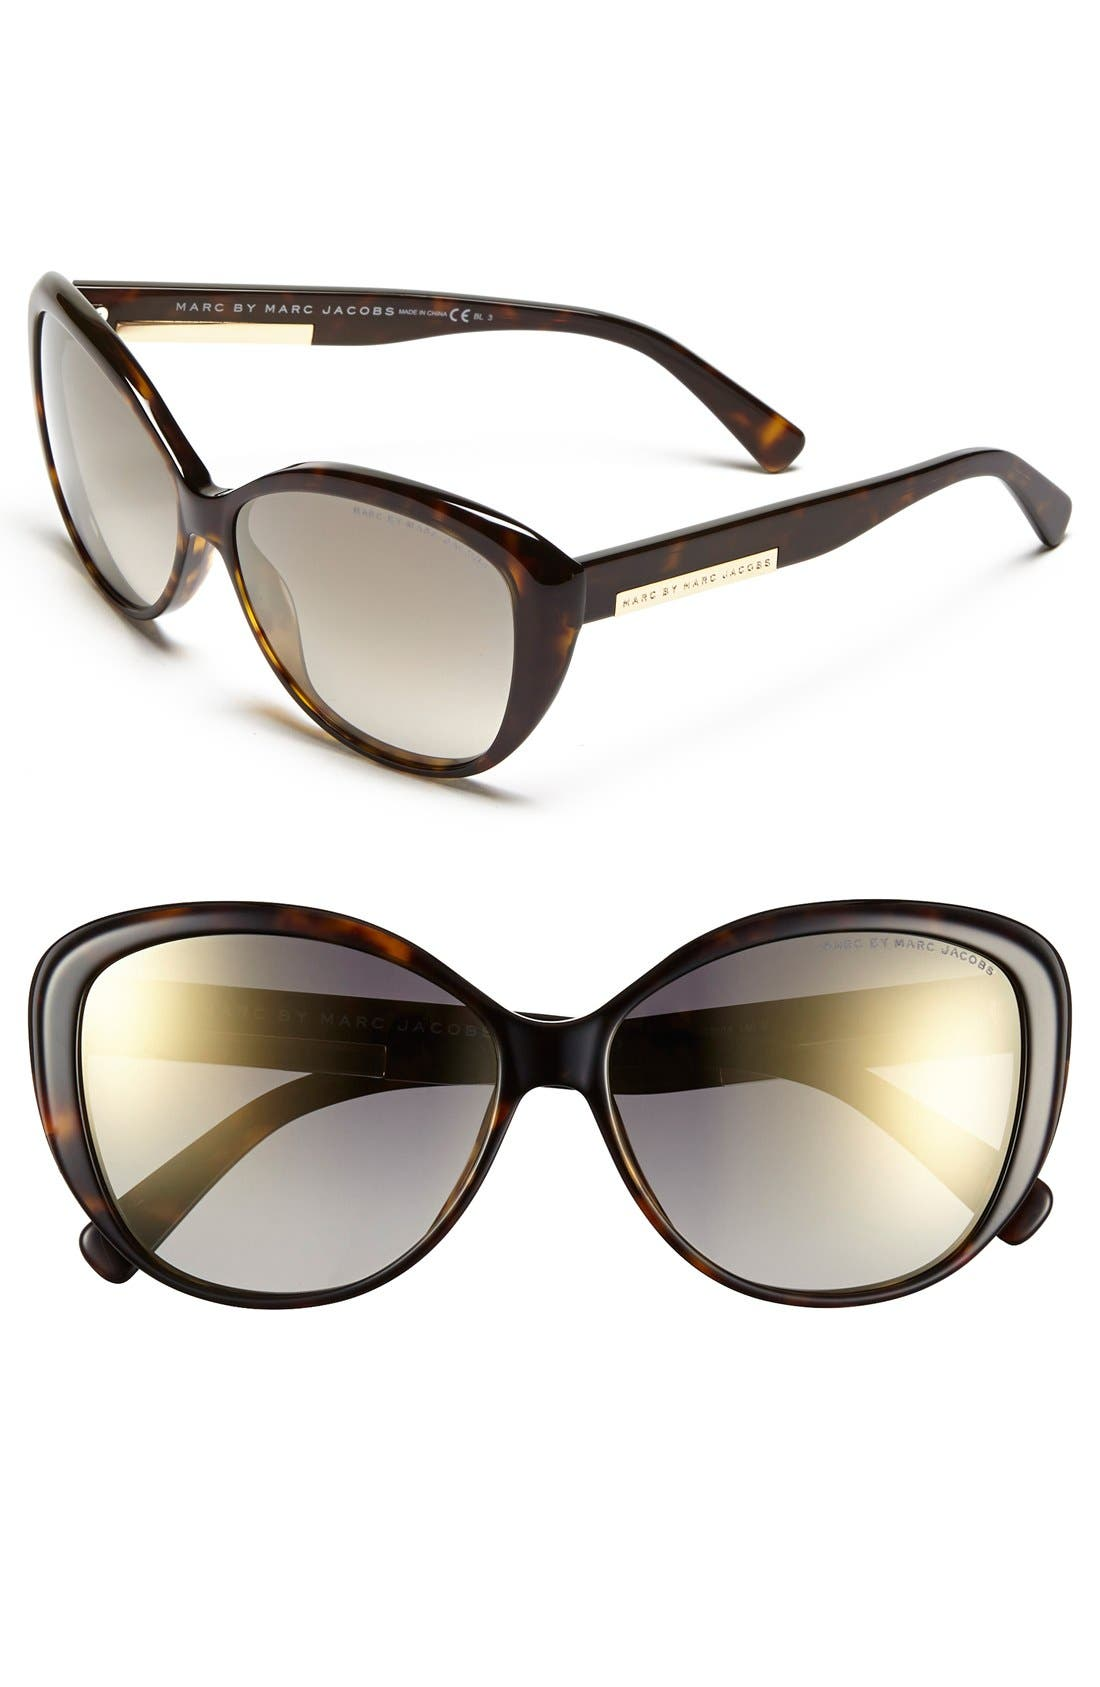 Alternate Image 1 Selected - MARC BY MARC JACOBS 58mm Retro Sunglasses (Nordstrom Exclusive)